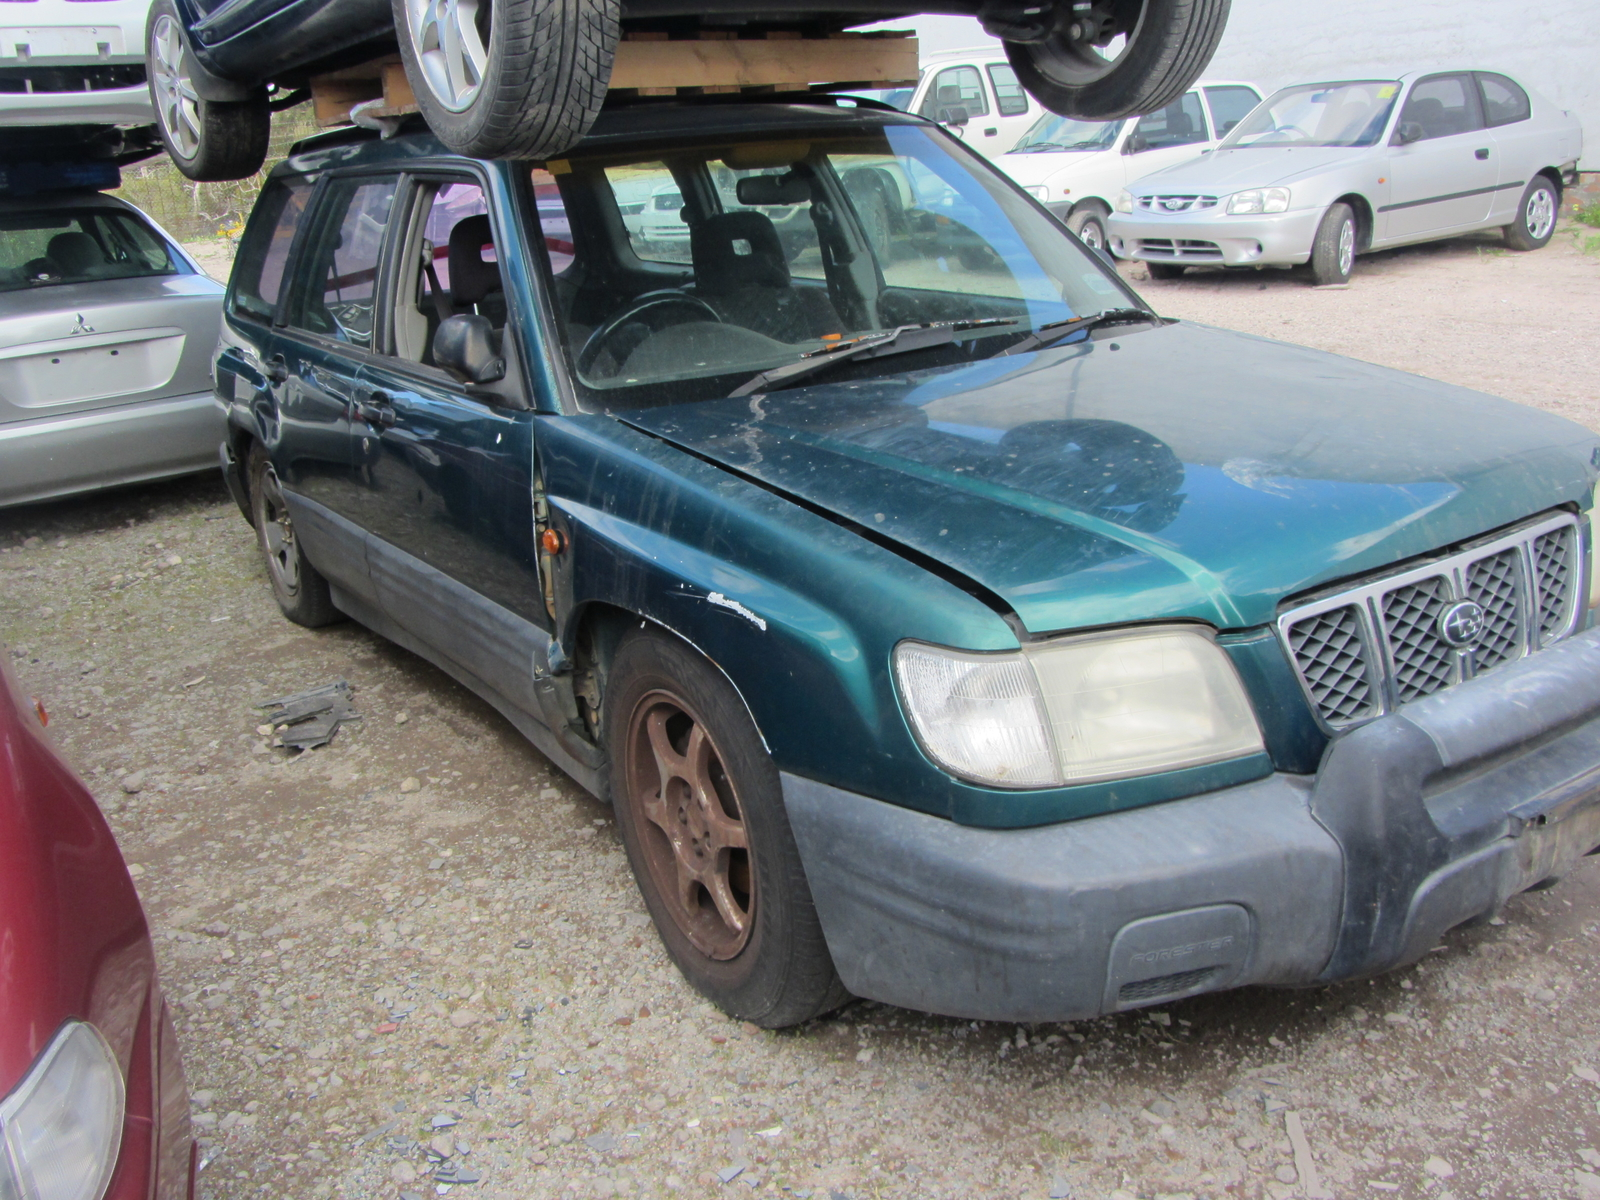 cash for unwanted cars, car removal Perth, cash for damaged cars, cash for scrap cars, car wreckers Perth, cash for cars